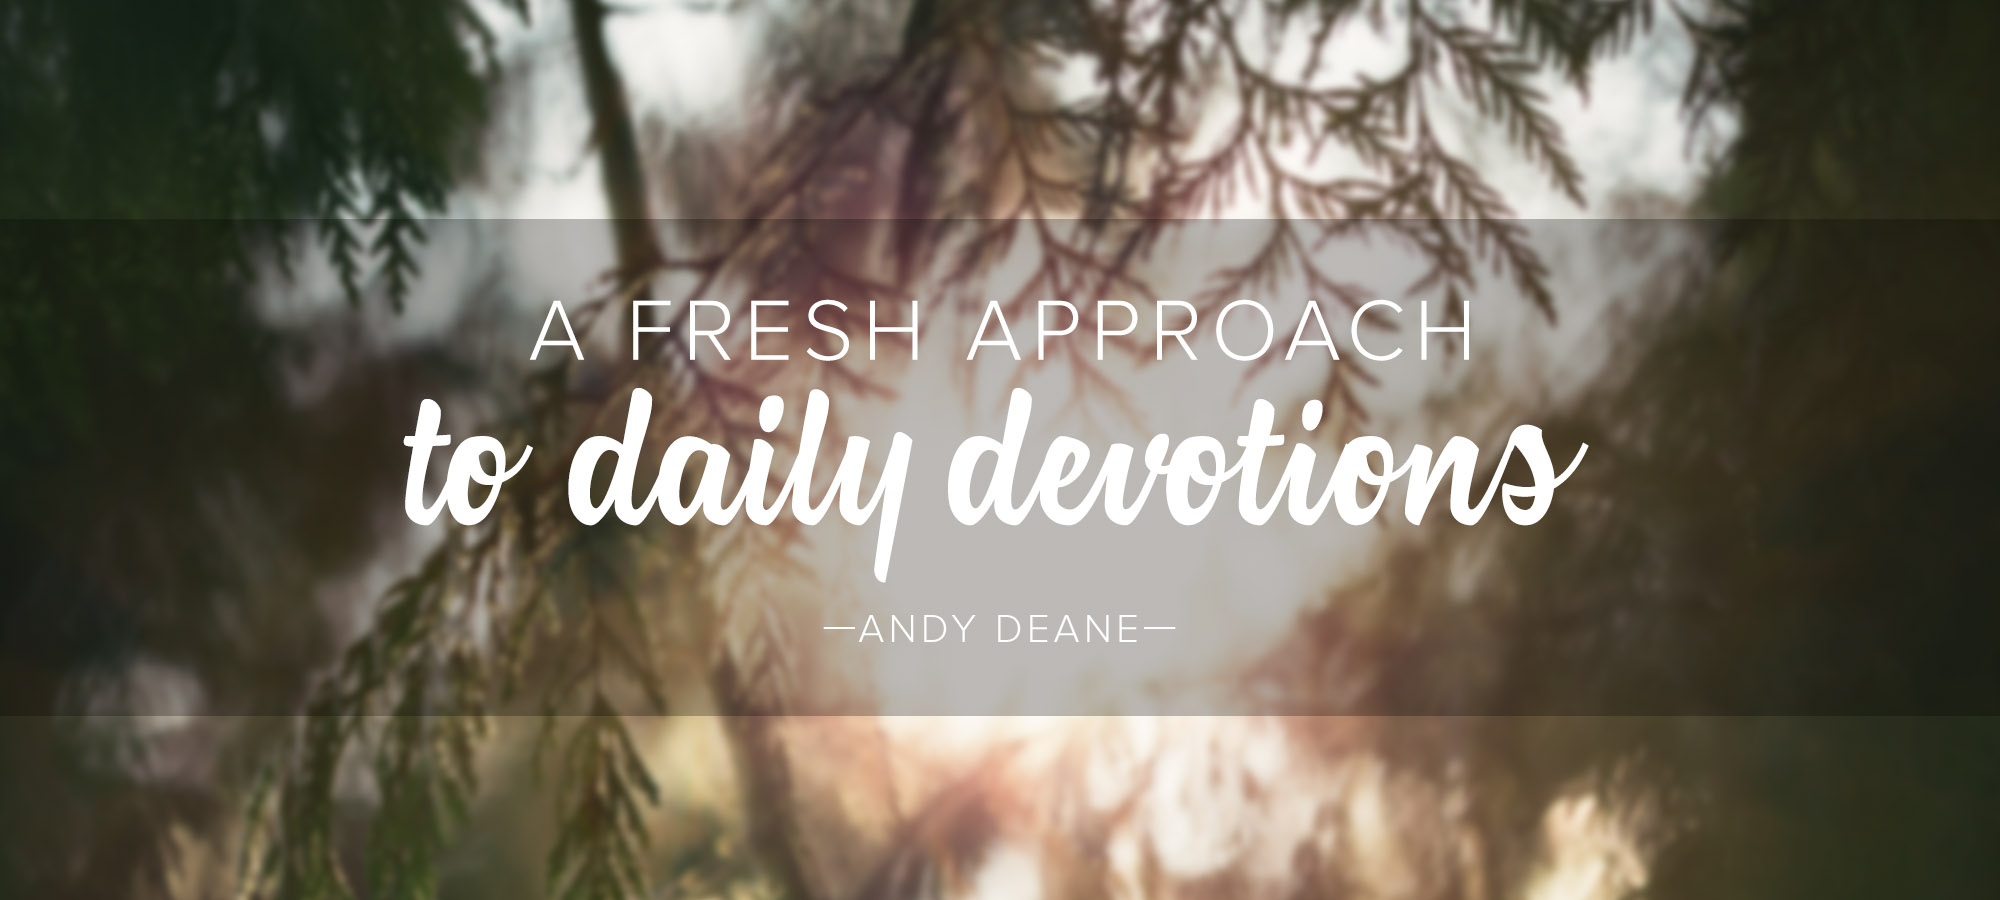 A Fresh Approach to Daily Devotions